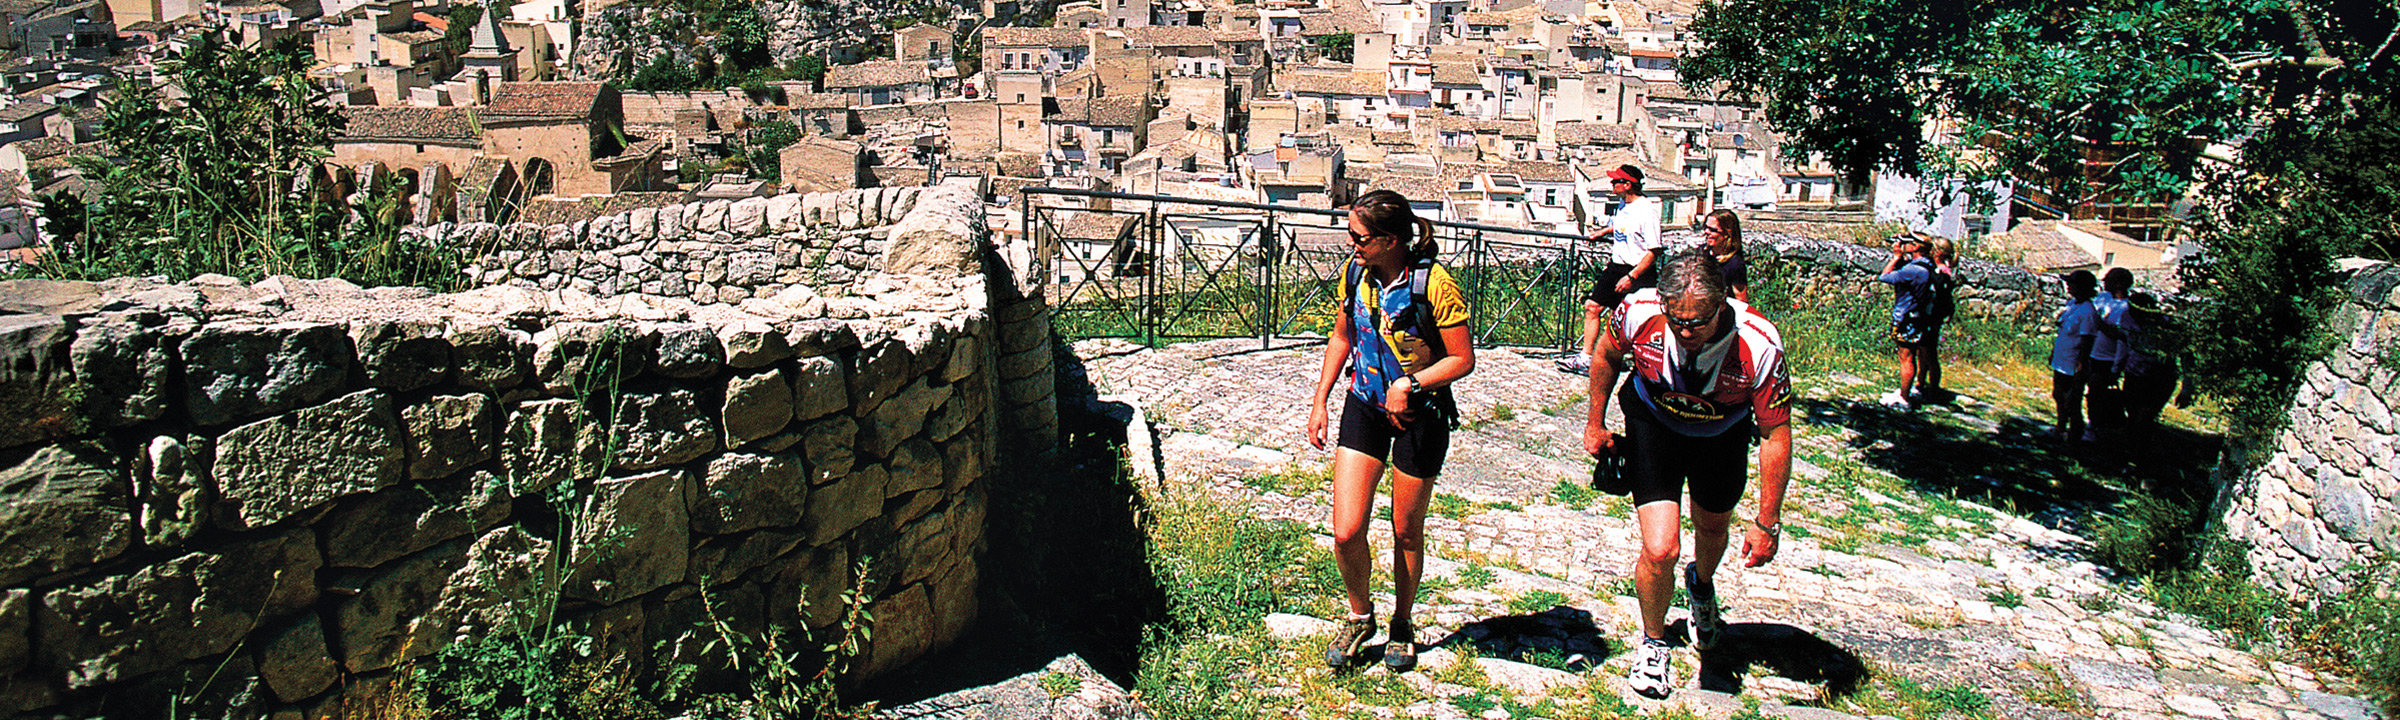 Sicily active travel